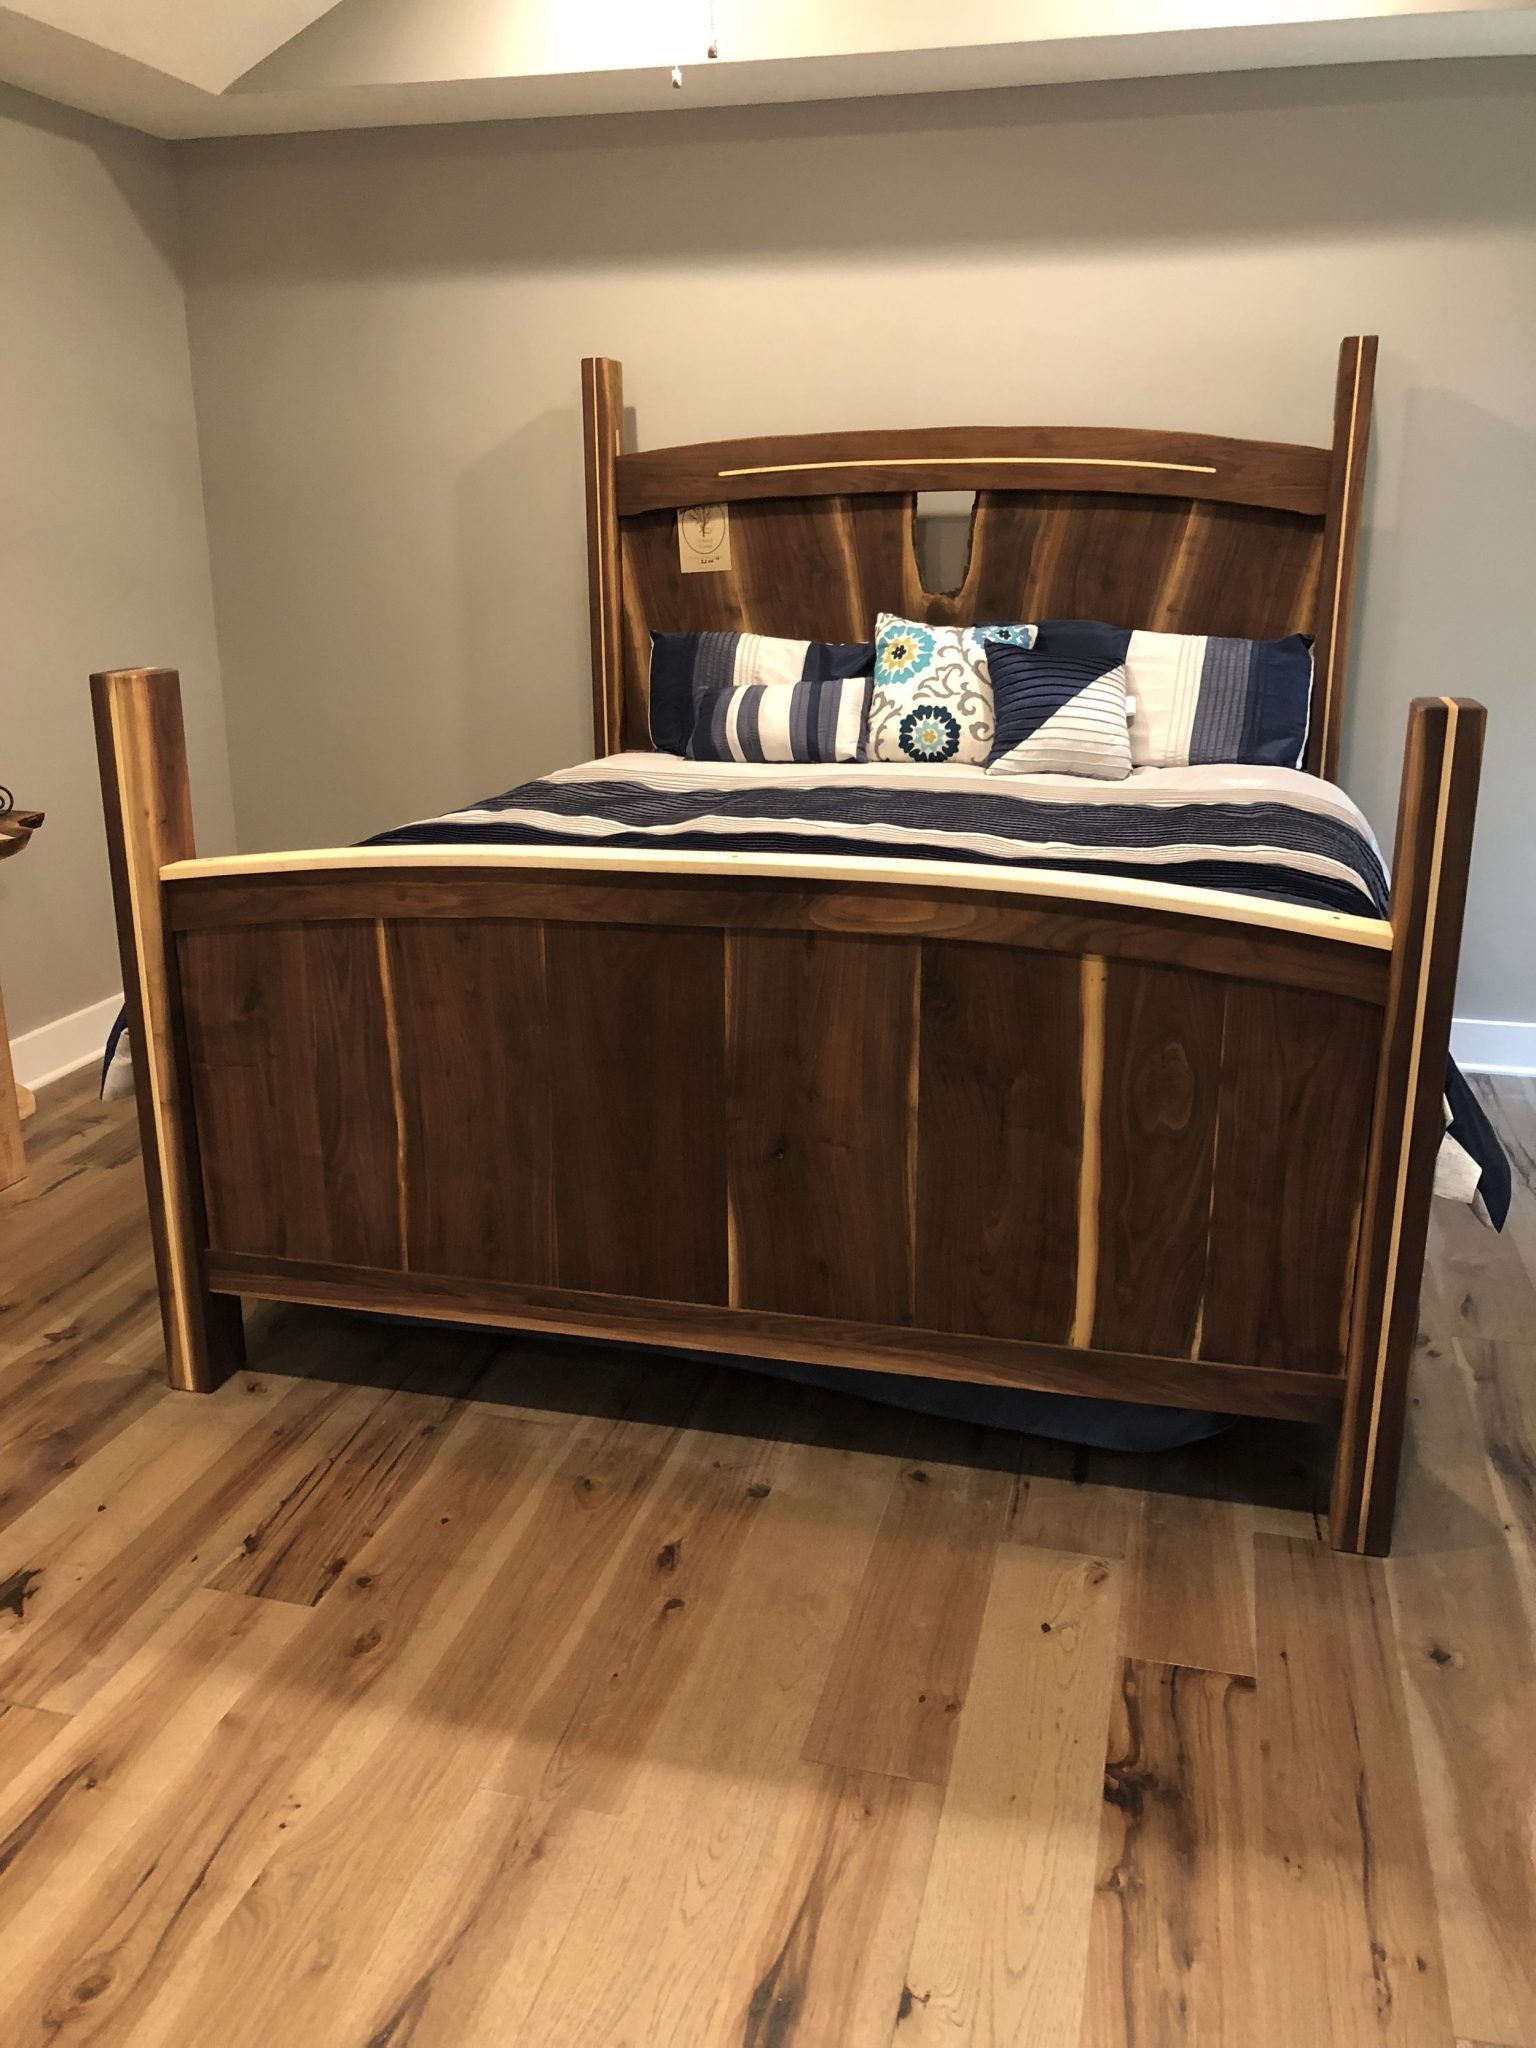 Handcrafted king size walnut bed with maple accents.